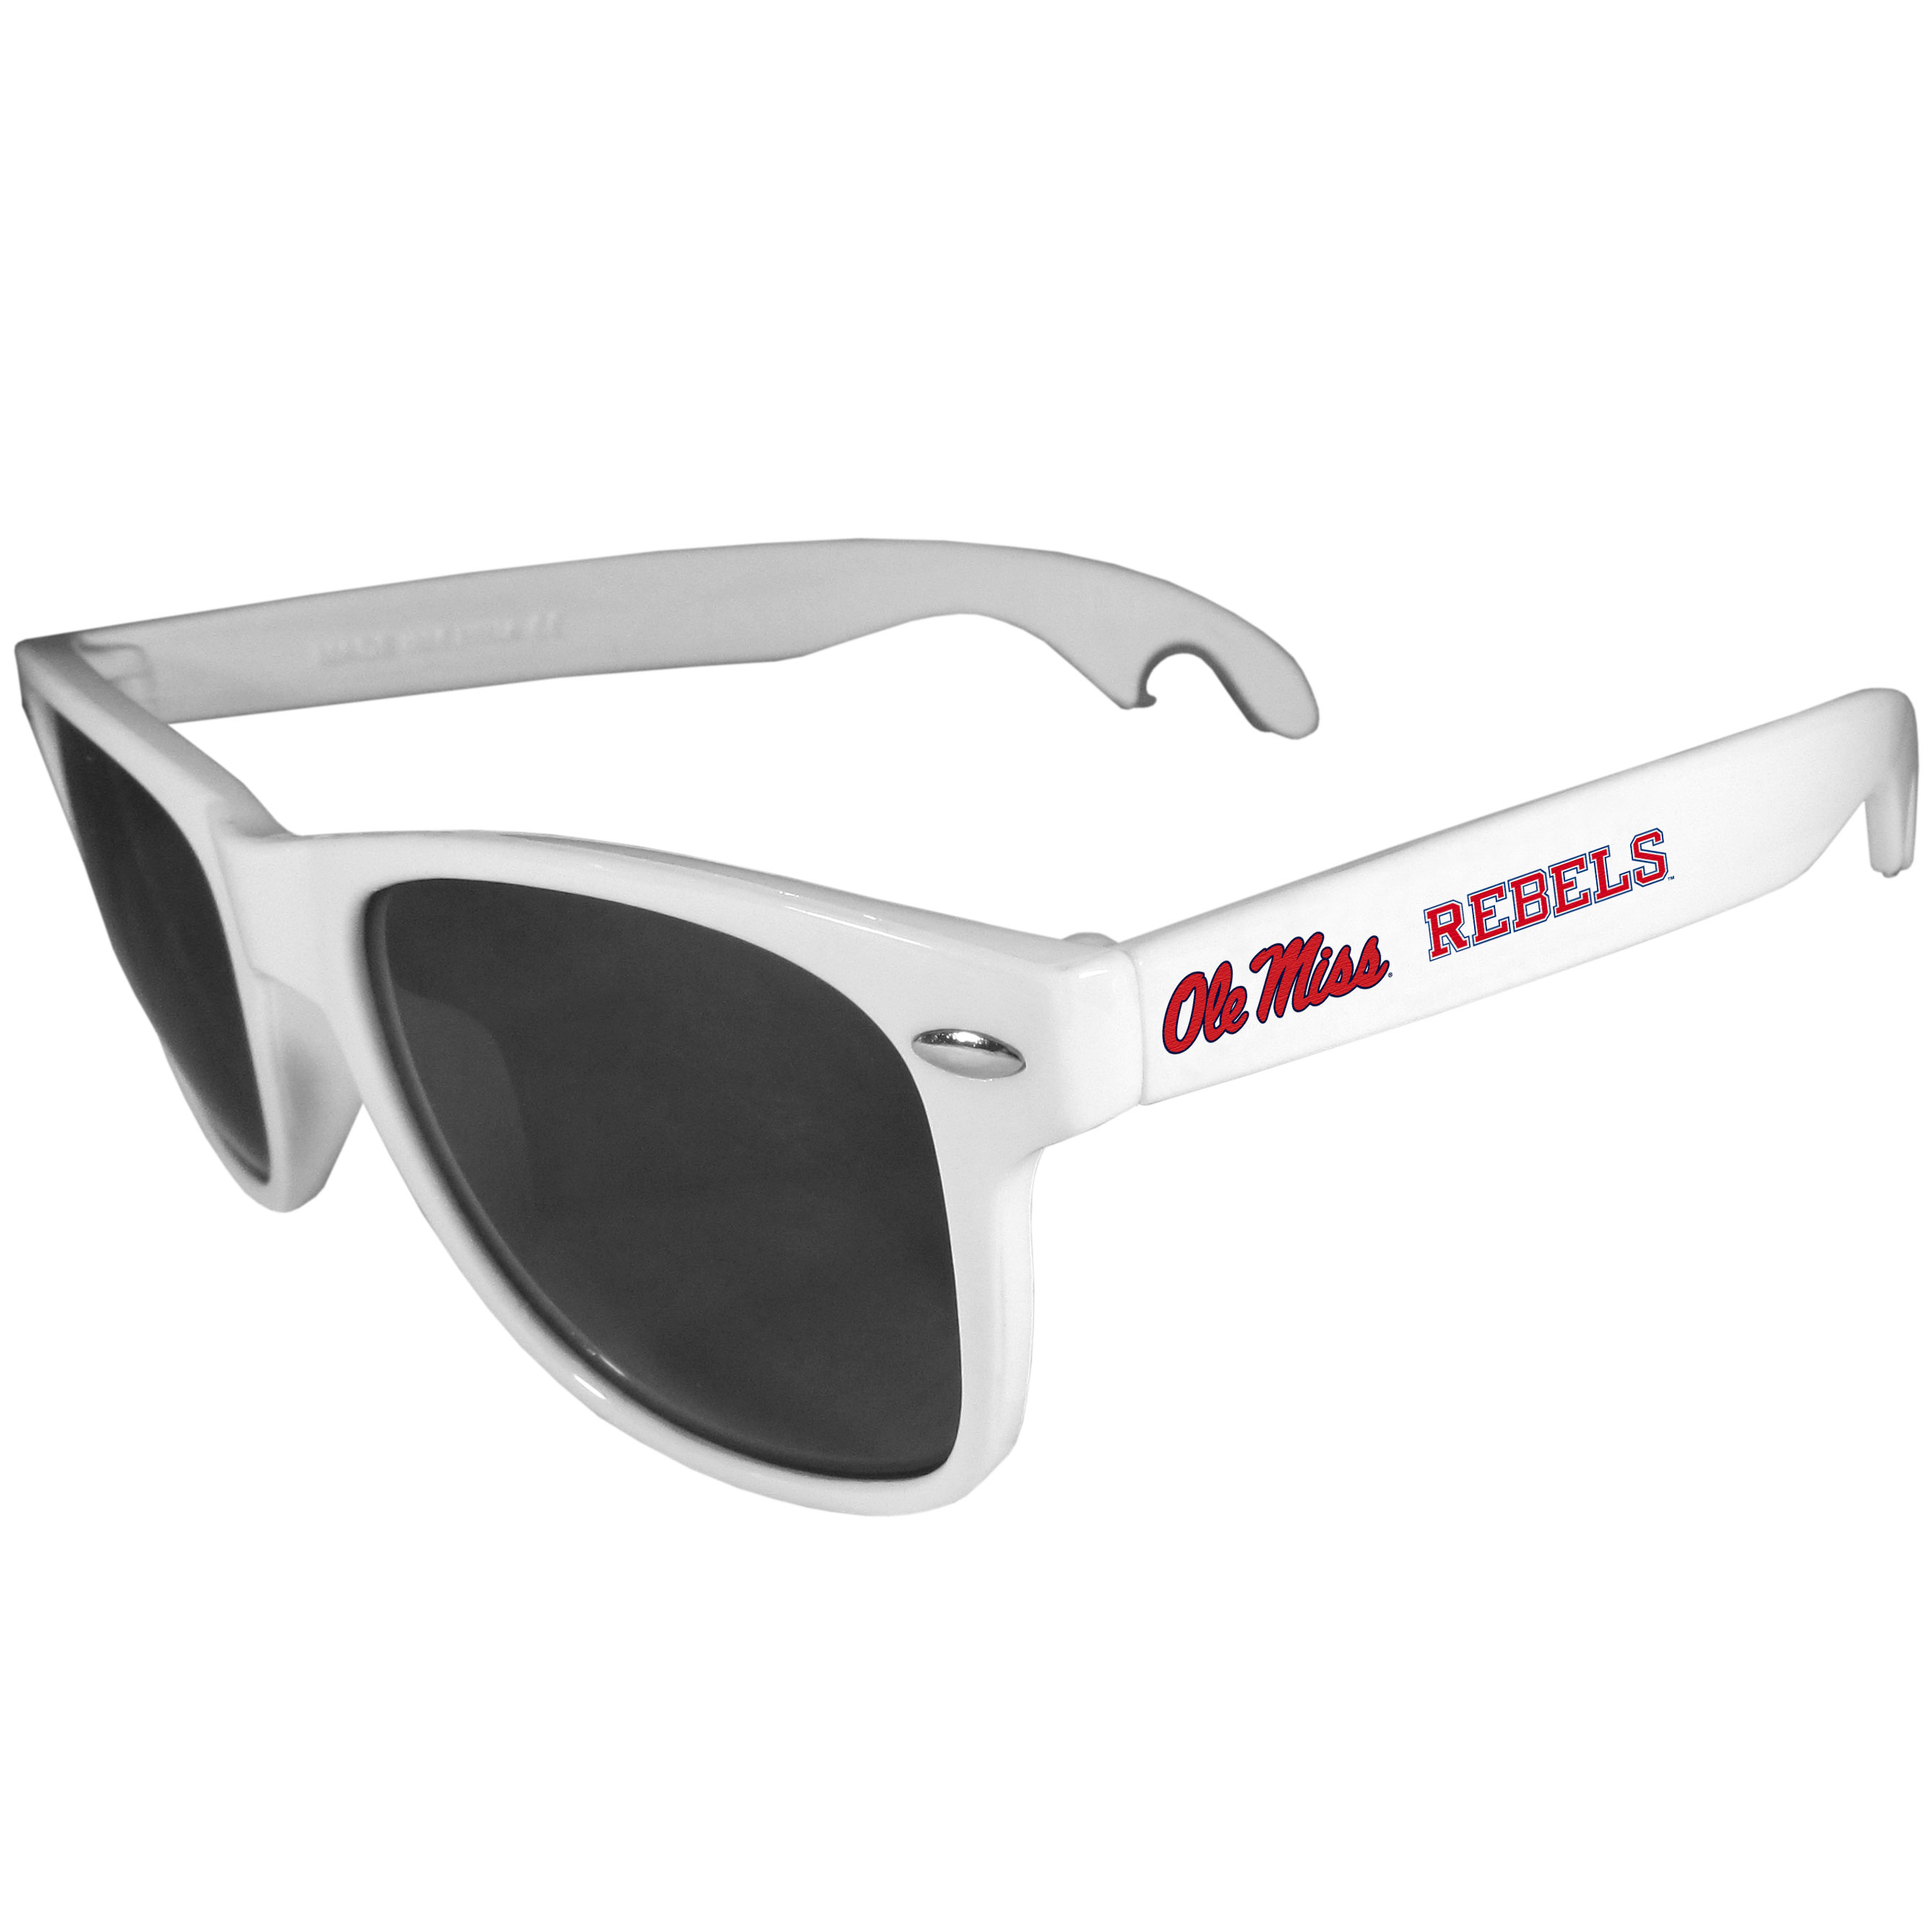 Mississippi Rebels Beachfarer Bottle Opener Sunglasses, White - Seriously, these sunglasses open bottles! Keep the party going with these amazing Mississippi Rebels bottle opener sunglasses. The stylish retro frames feature team designs on the arms and functional bottle openers on the end of the arms. Whether you are at the beach or having a backyard BBQ on game day, these shades will keep your eyes protected with 100% UVA/UVB protection and keep you hydrated with the handy bottle opener arms.